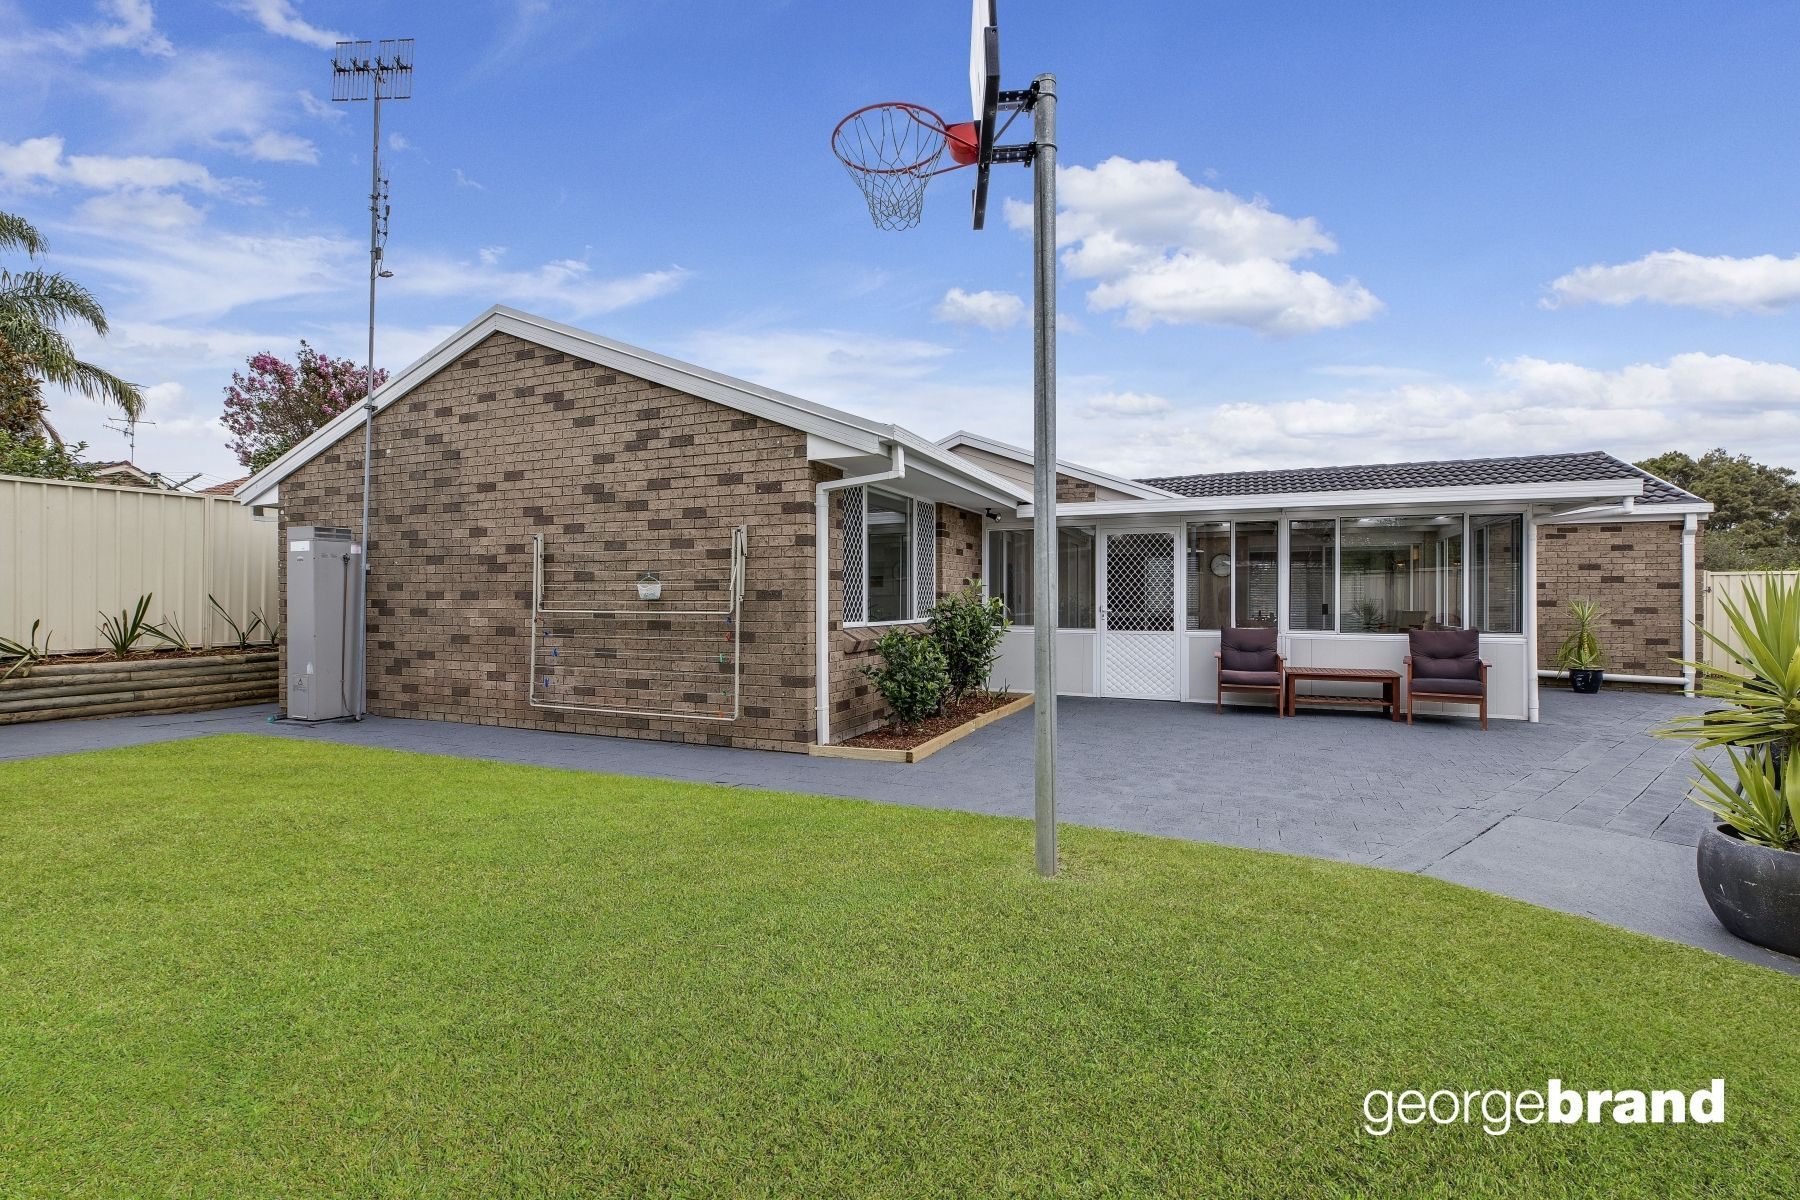 Bateau Bay Real Estate: Single Level Living with Fluid Living Zones + Abundant Natural Light